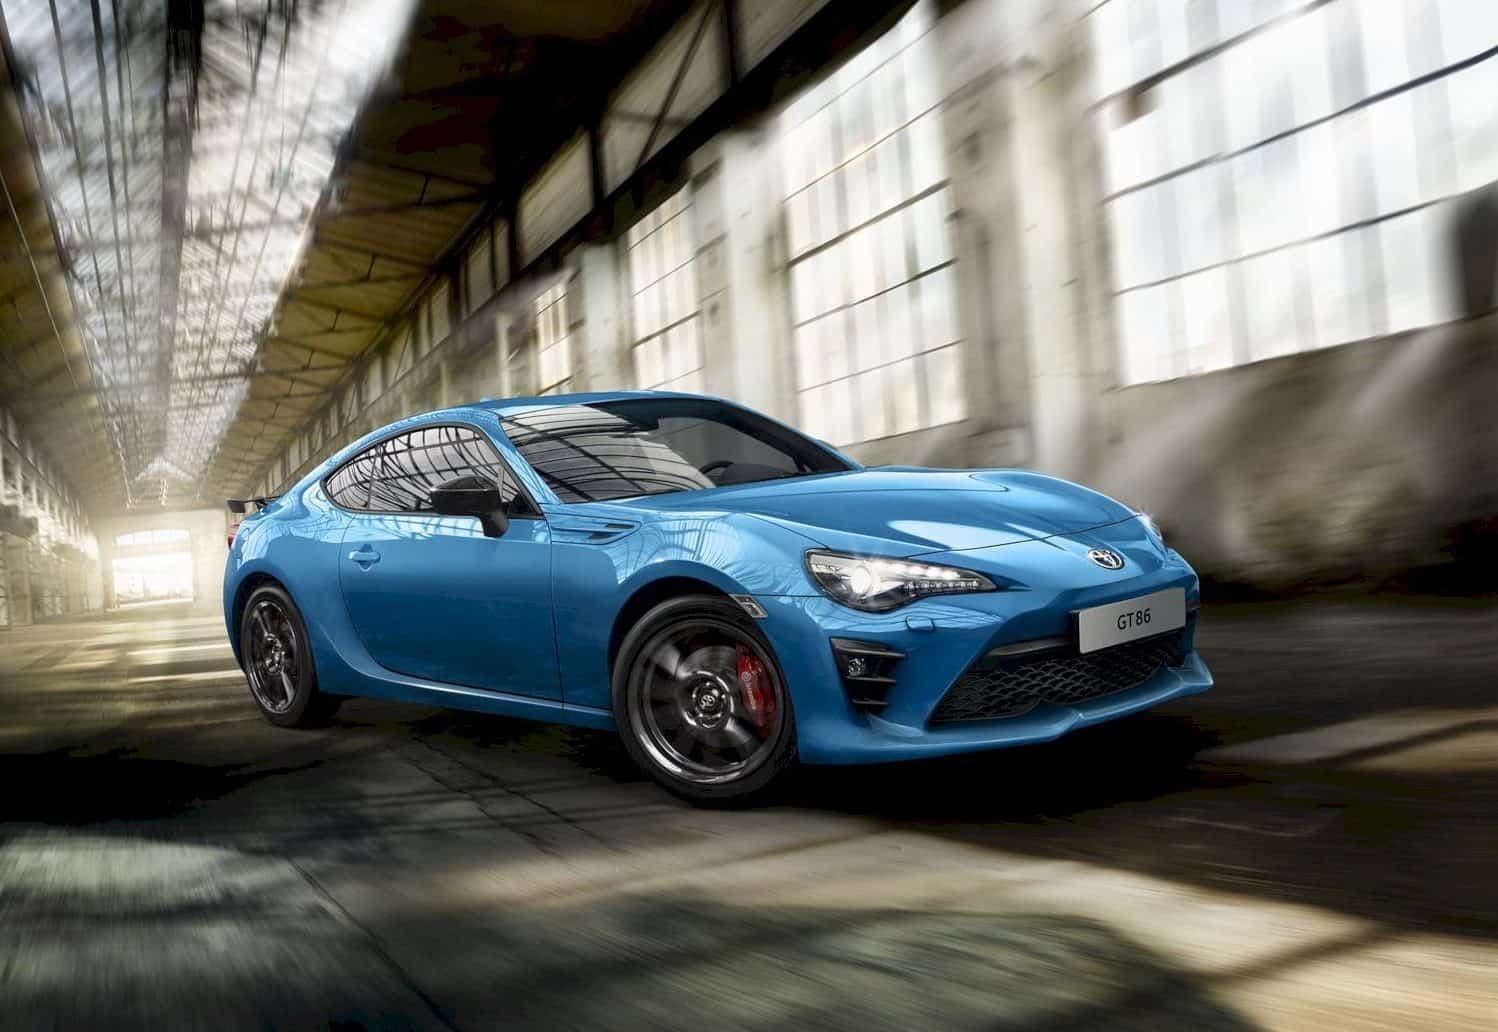 Toyota Gt86 Club Series Blue Edition 5